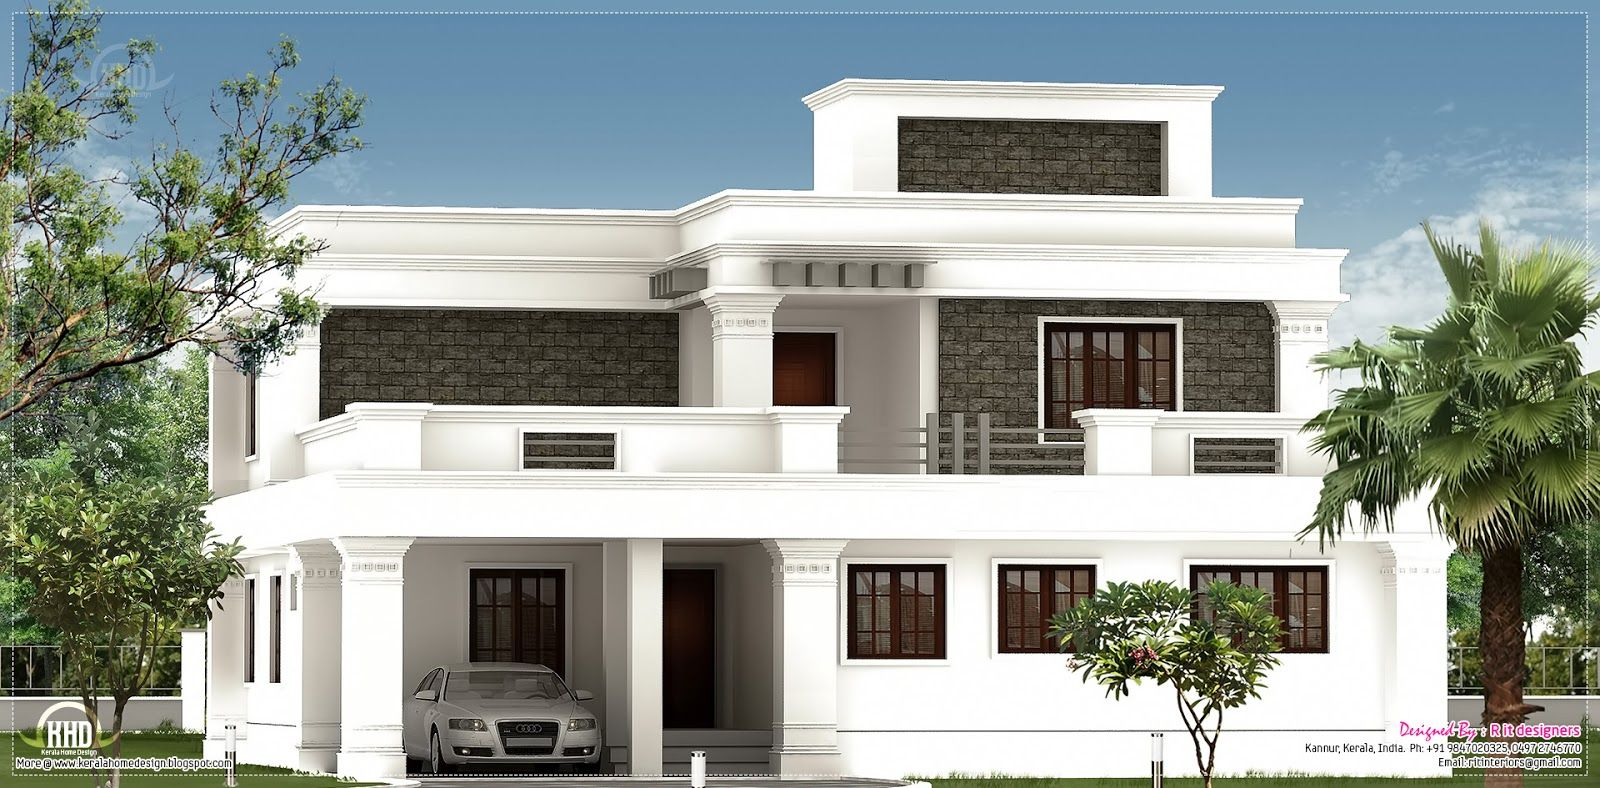 flat roof homes designs flat roof villa exterior in 2400 sqfeet kerala - Home Design In India